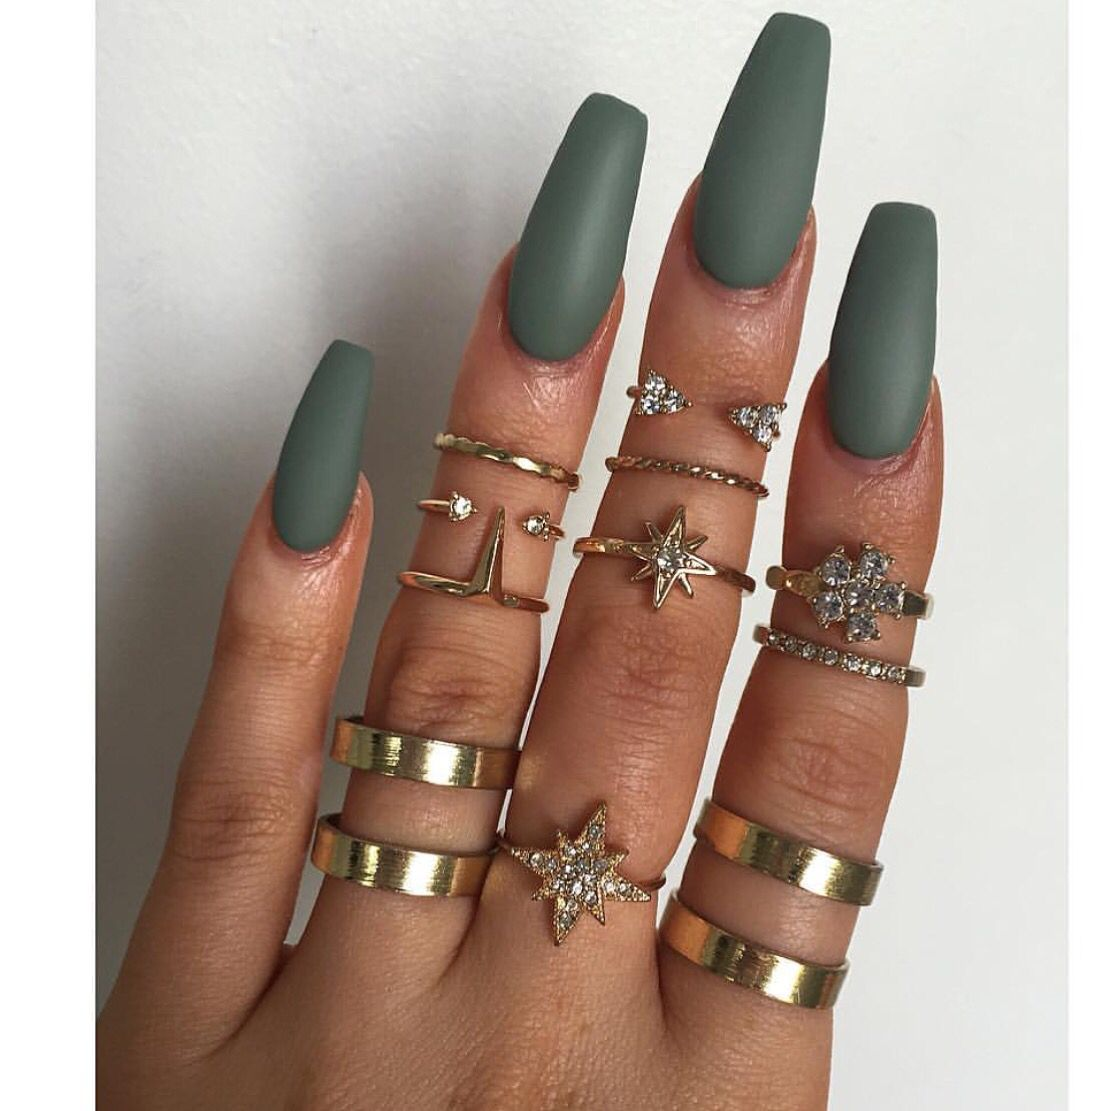 Not my length preference but I do love that color and the matte ...